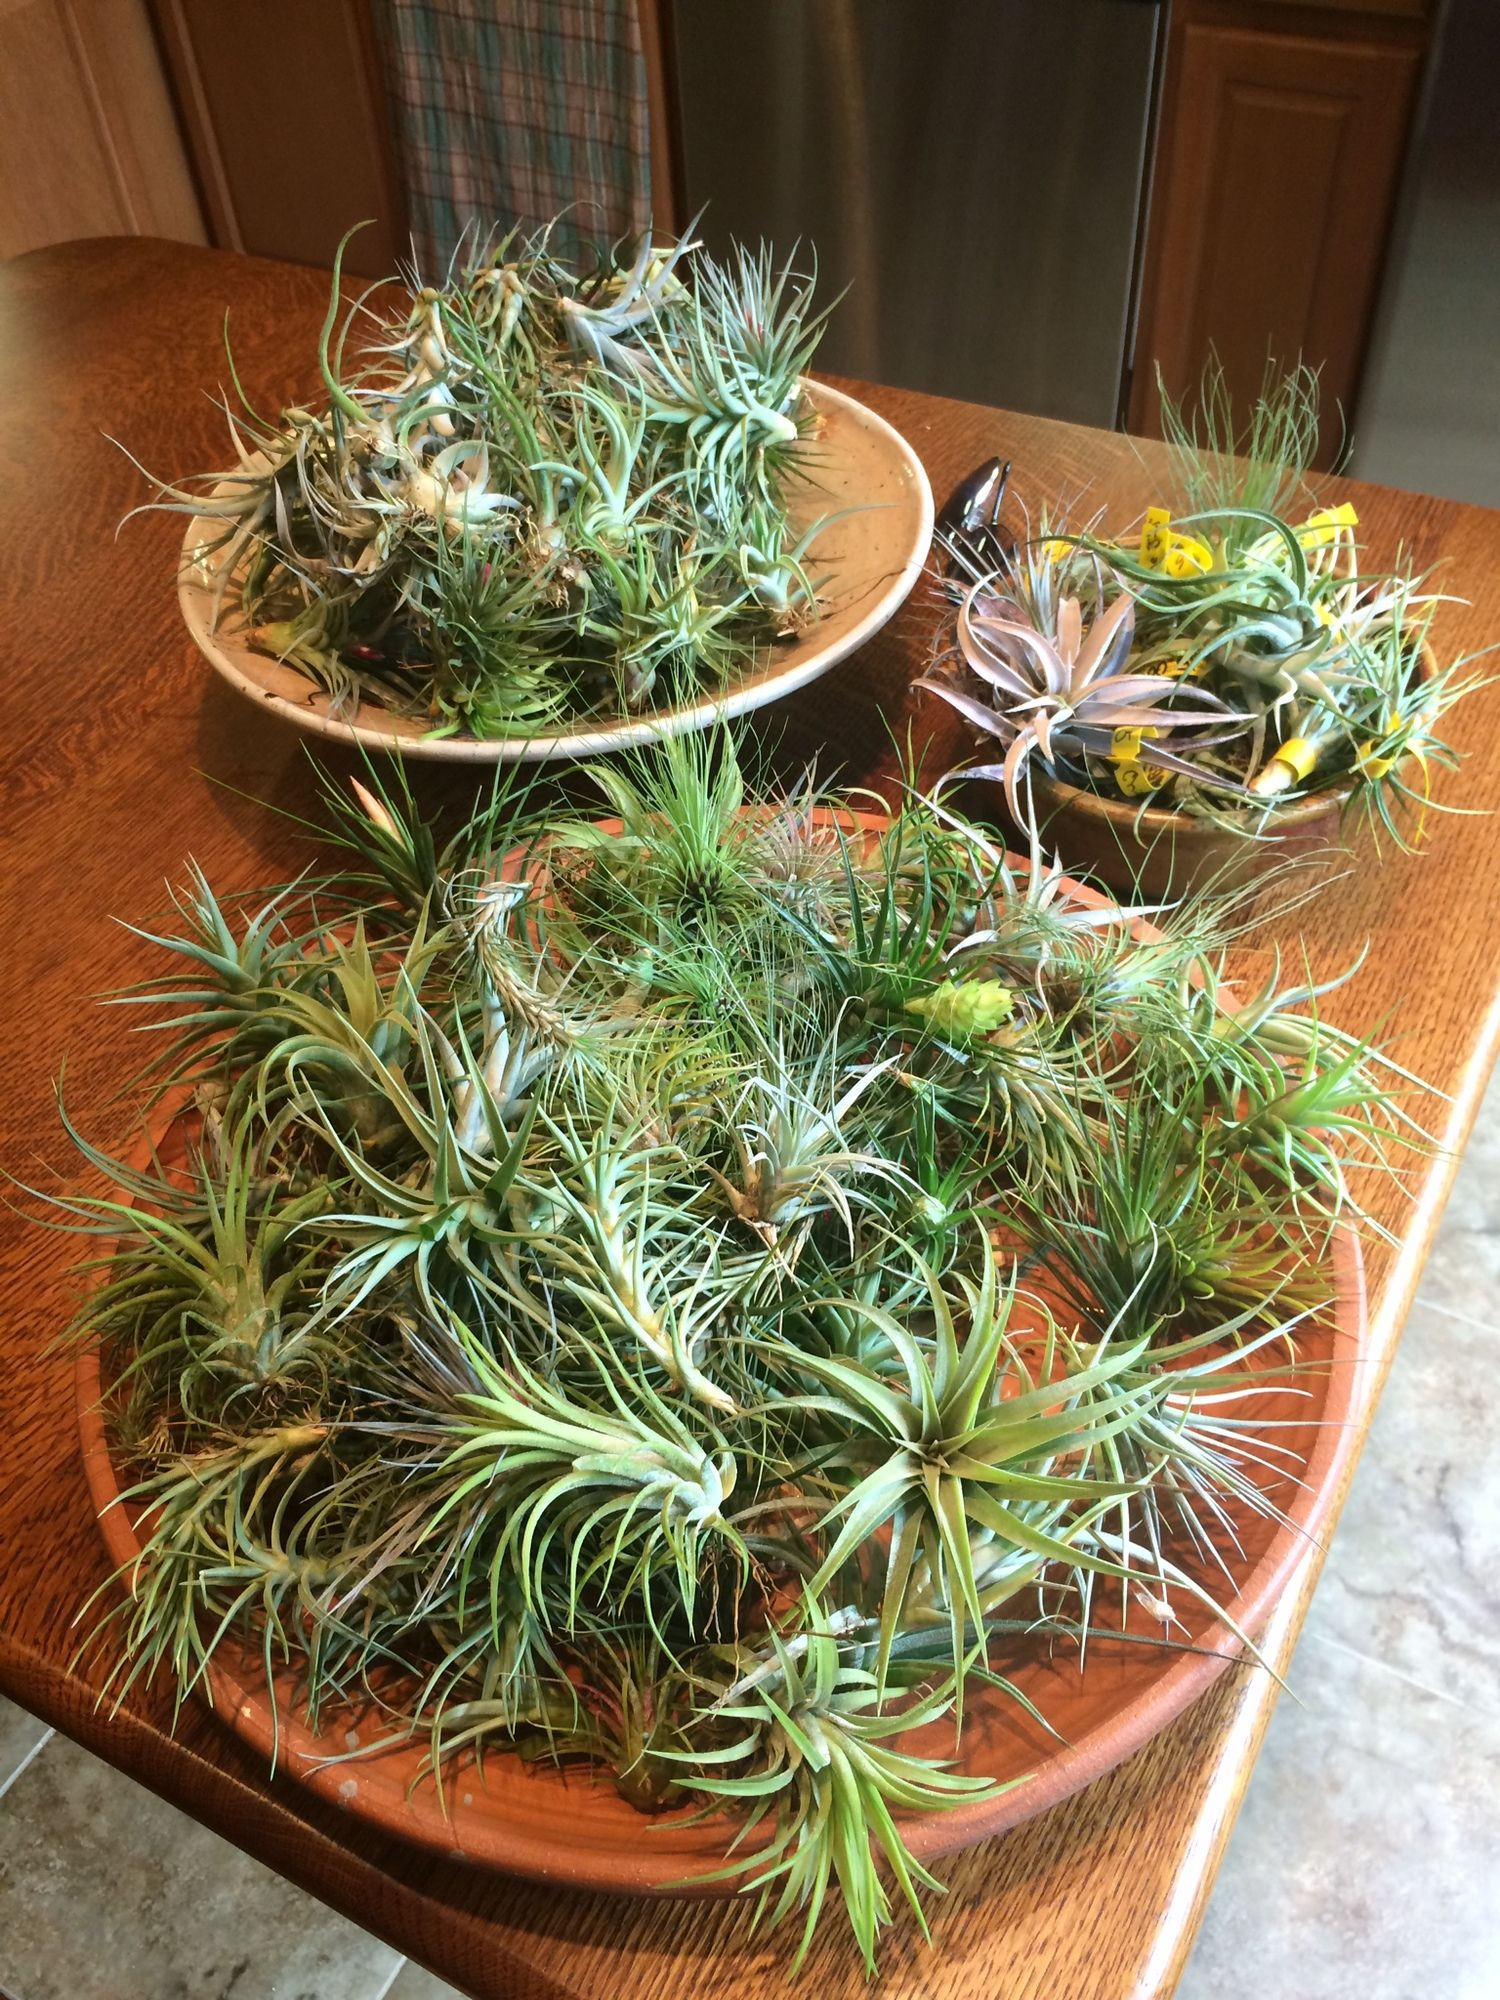 Healthy Tillandsia Air Plants In Bowls Tillandsia Air Plant